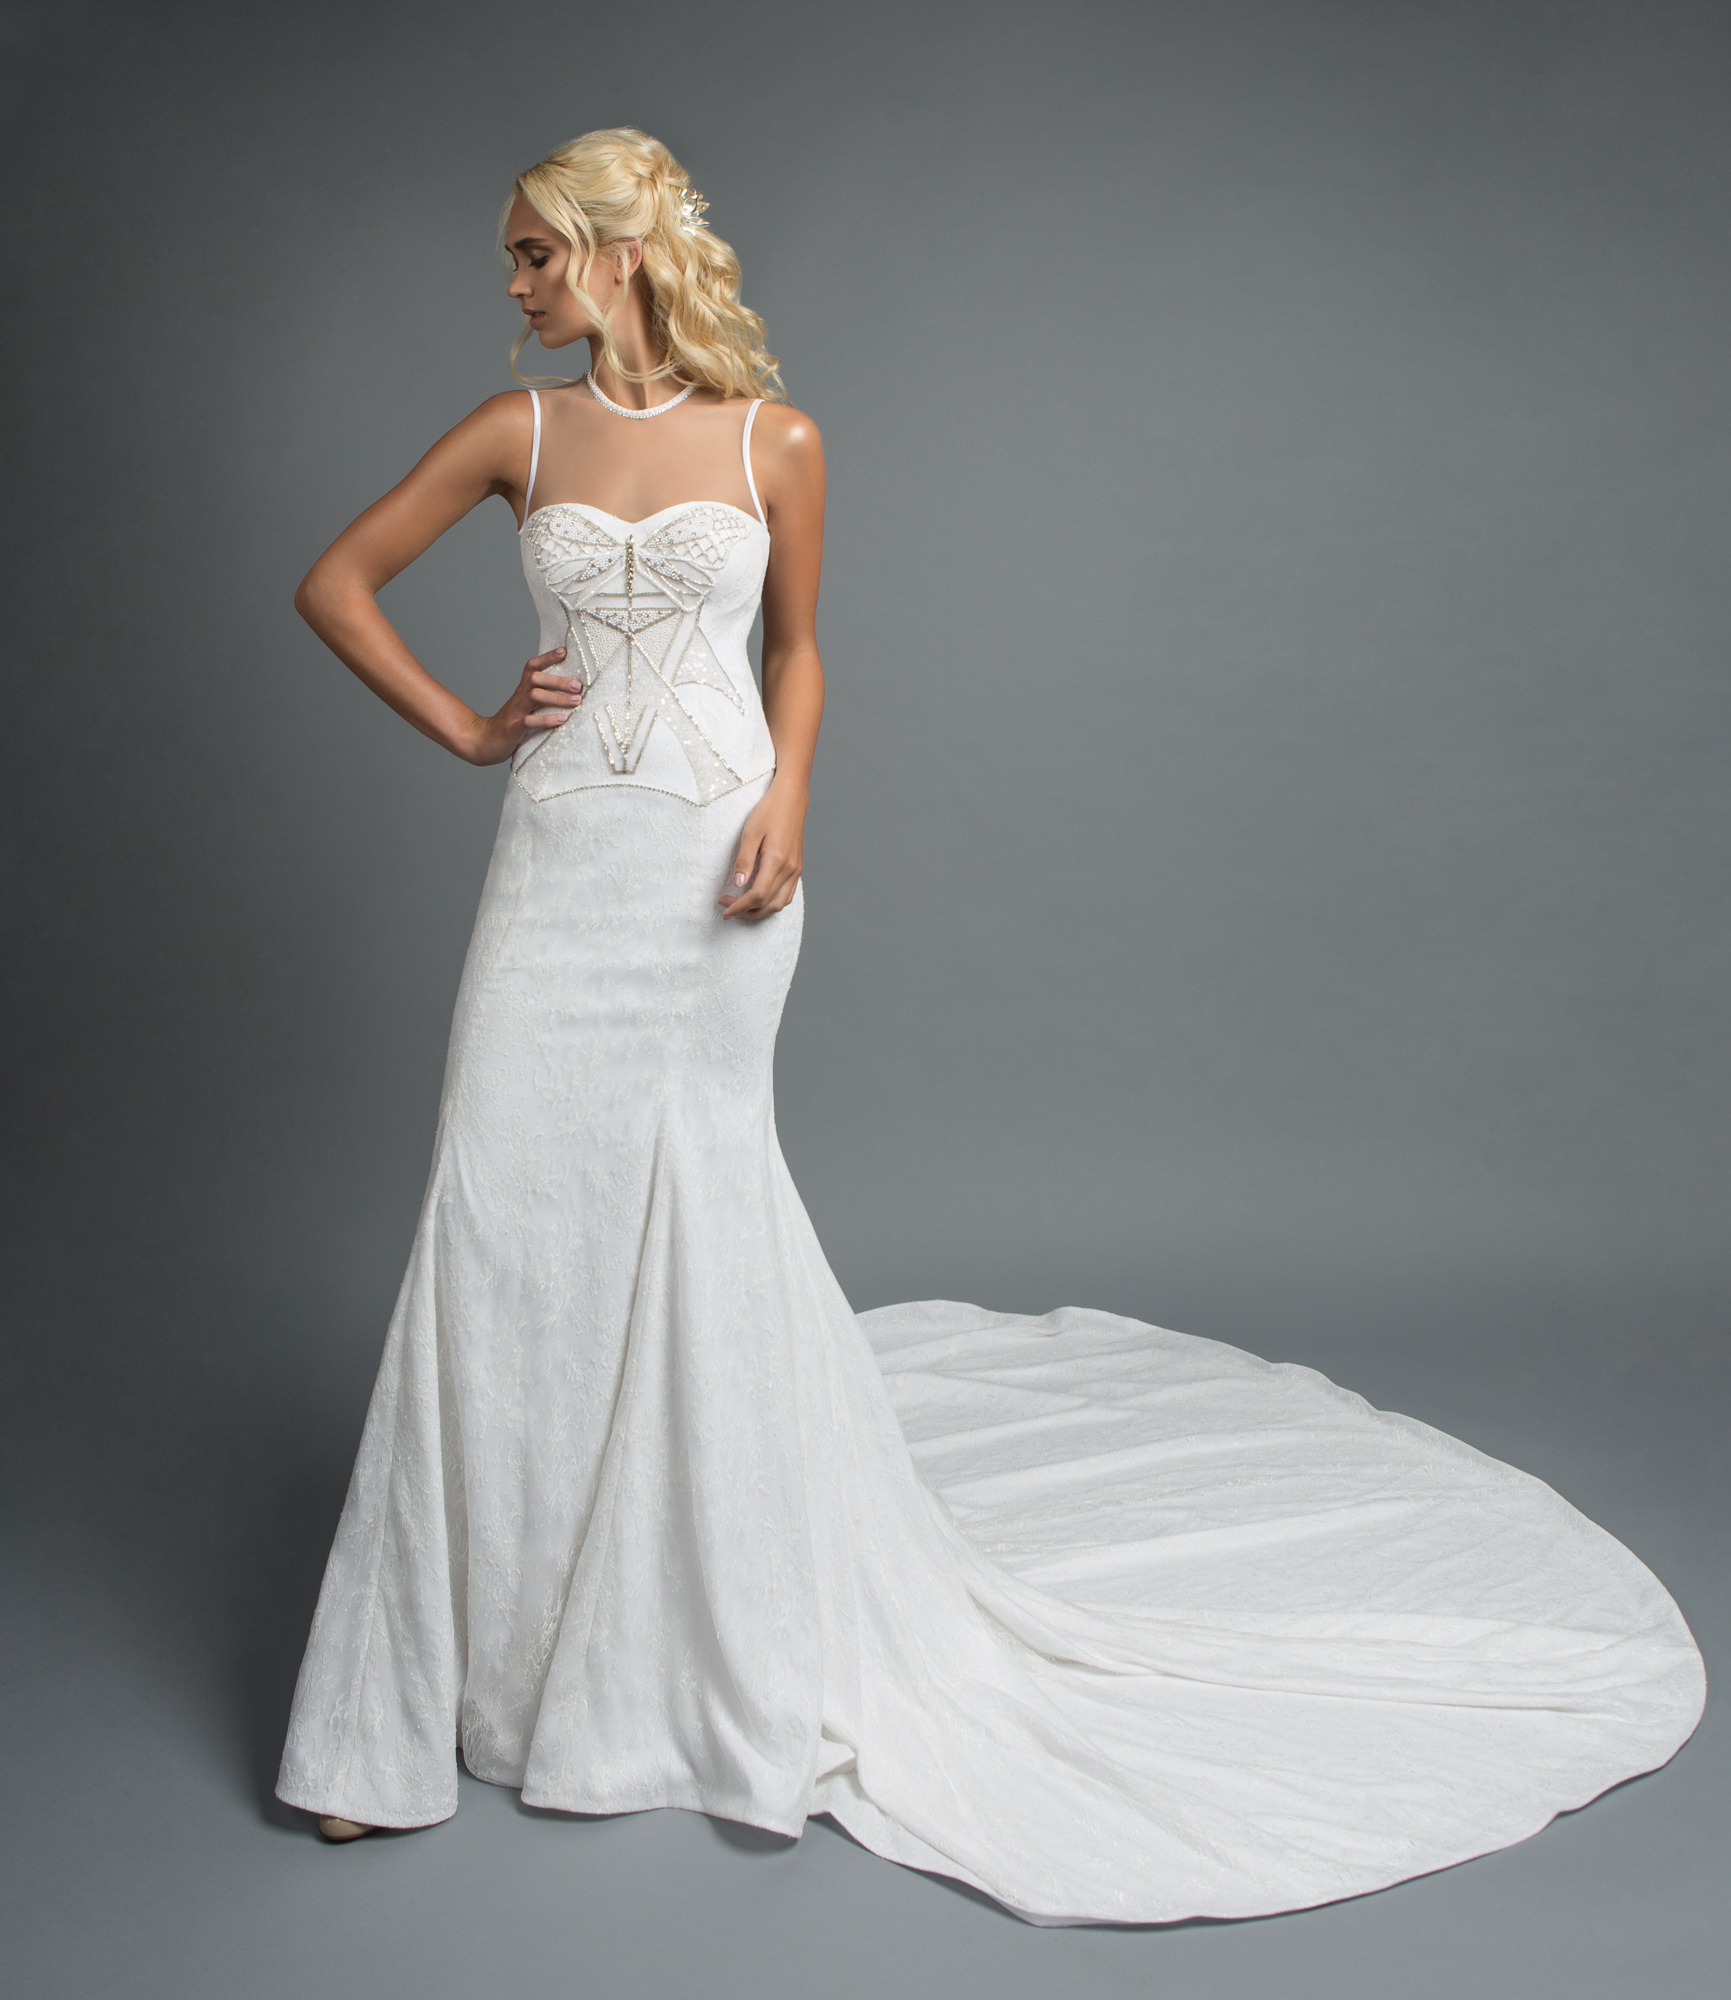 Gown from Victoria Spector Bridal Couture and IVY TRIO from Kata Banko Couture